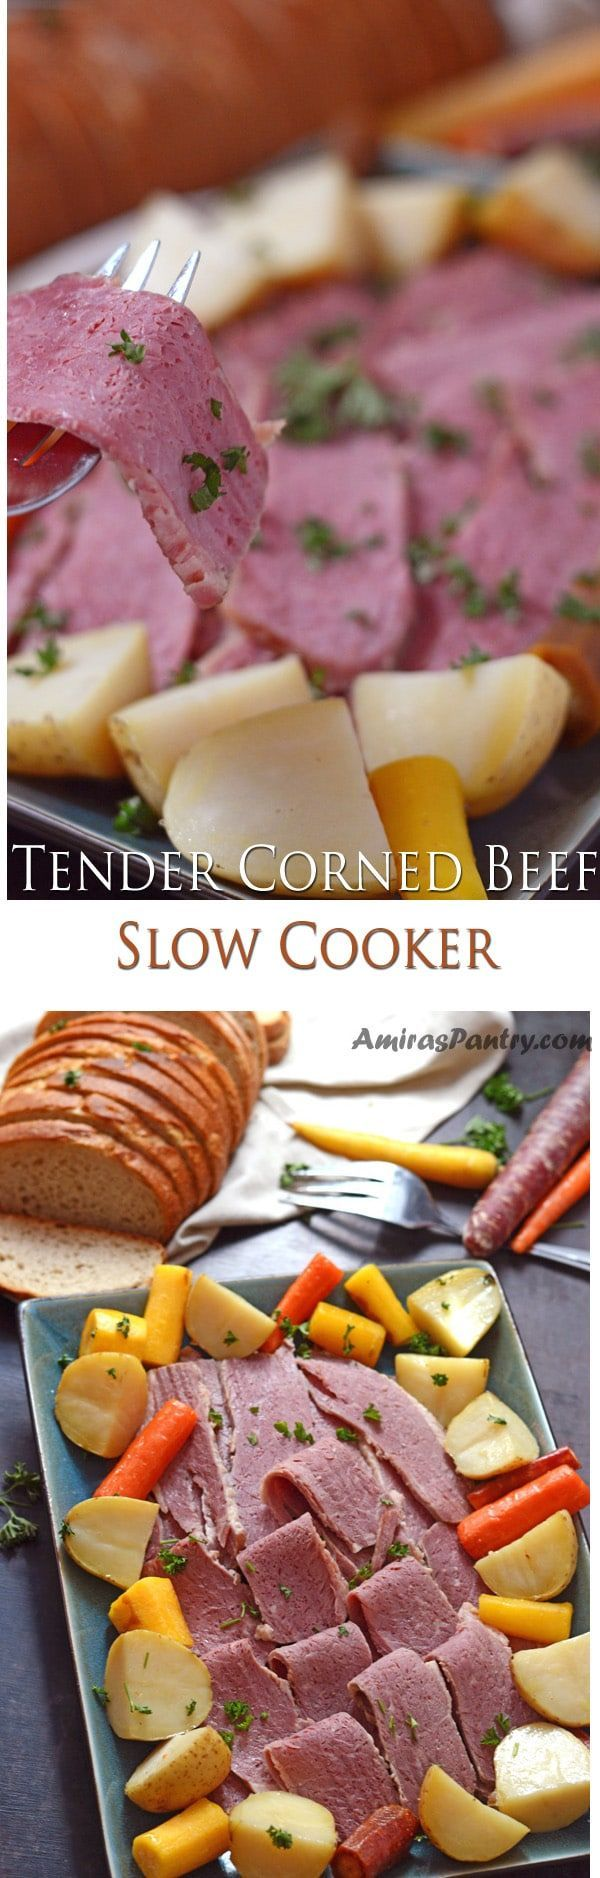 Tender Corned Beef, flavorful and fork tender. Making corned beef brisket has never been easier with this slow cooker approach. Search no more…this is THE perfect recipe for this timeless St. Patrick classic. #stpatrick #stpatricksday #party #green | amiraspantry.com